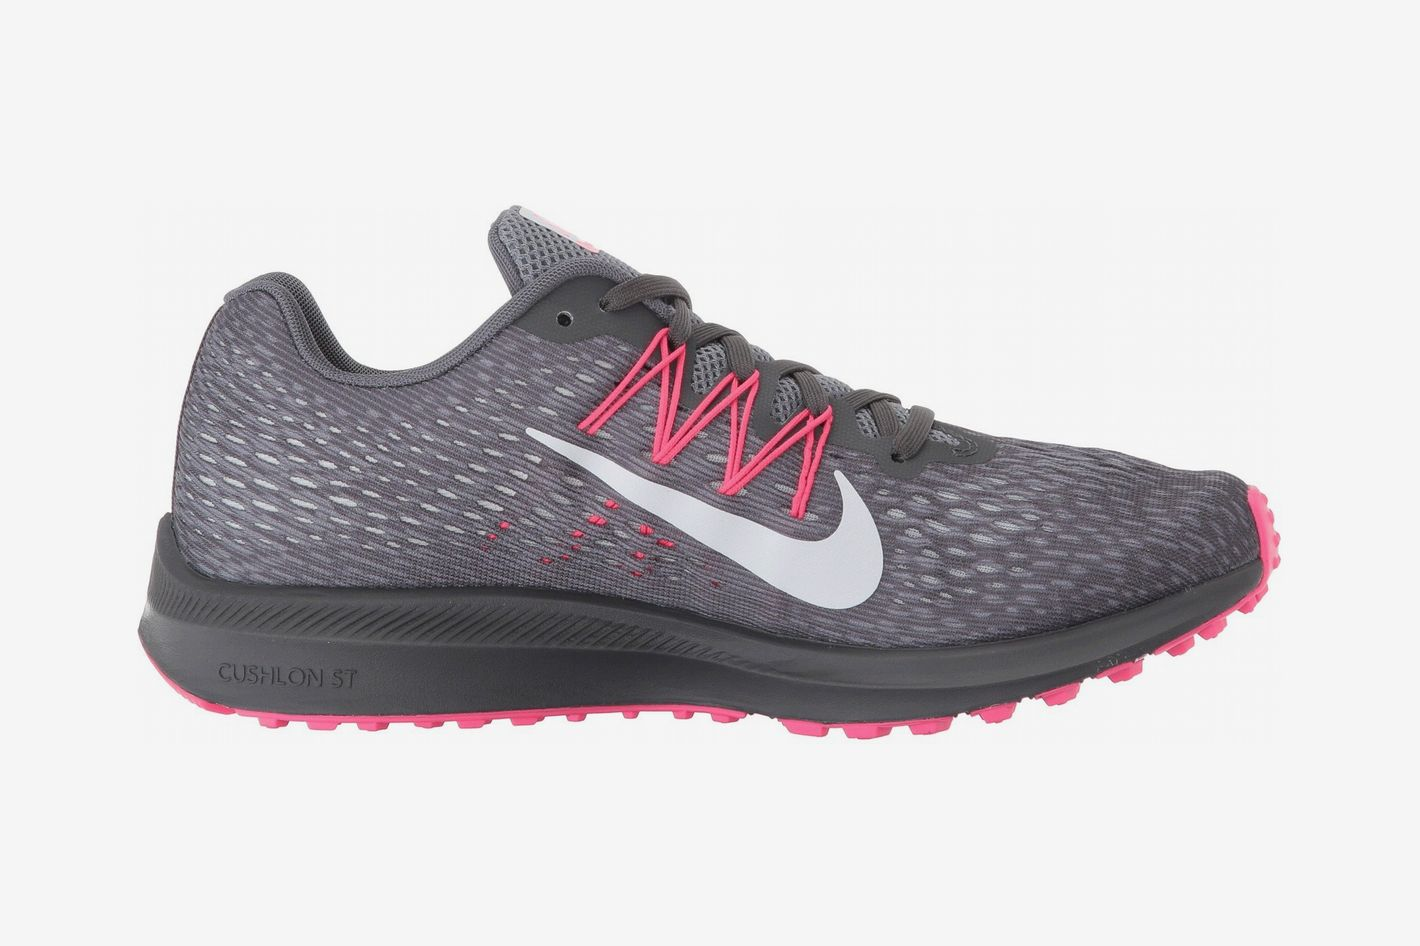 lowest price 37839 e4b86 Nike Air Zoom Winflo 5